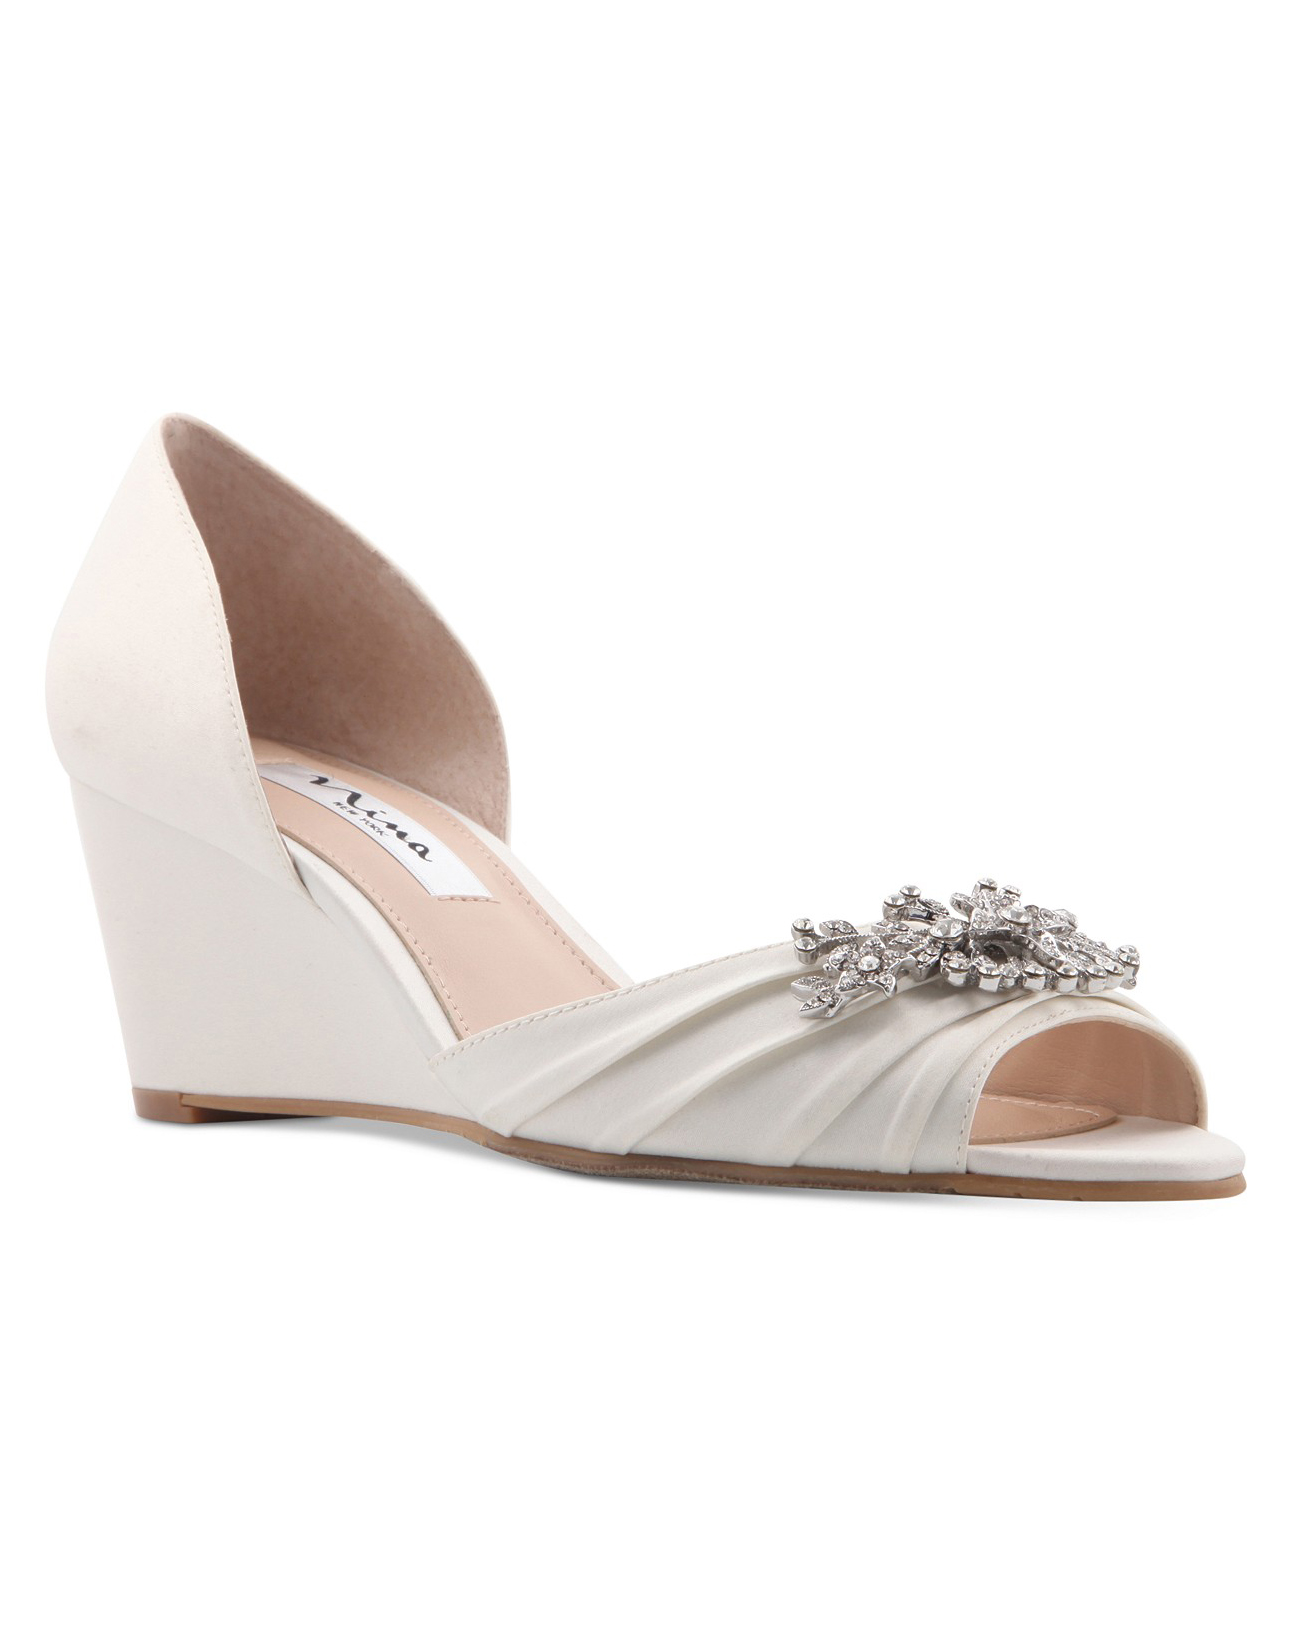 Bridal Shoes Garden Wedding: Wedding Shoes That Won't Sink Into The Grass At An Outdoor